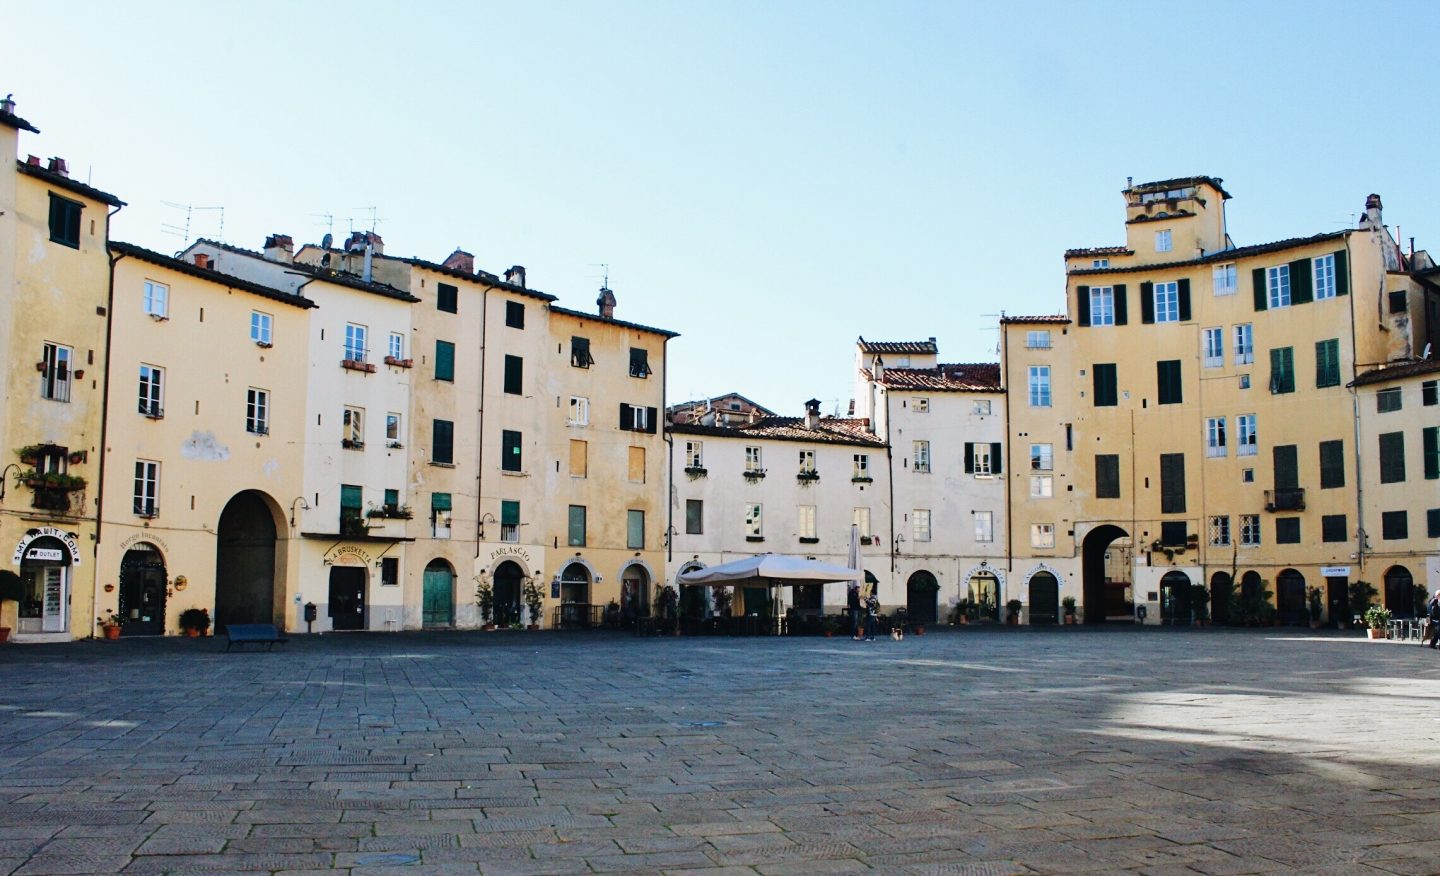 The main square in Lucca, Italy!